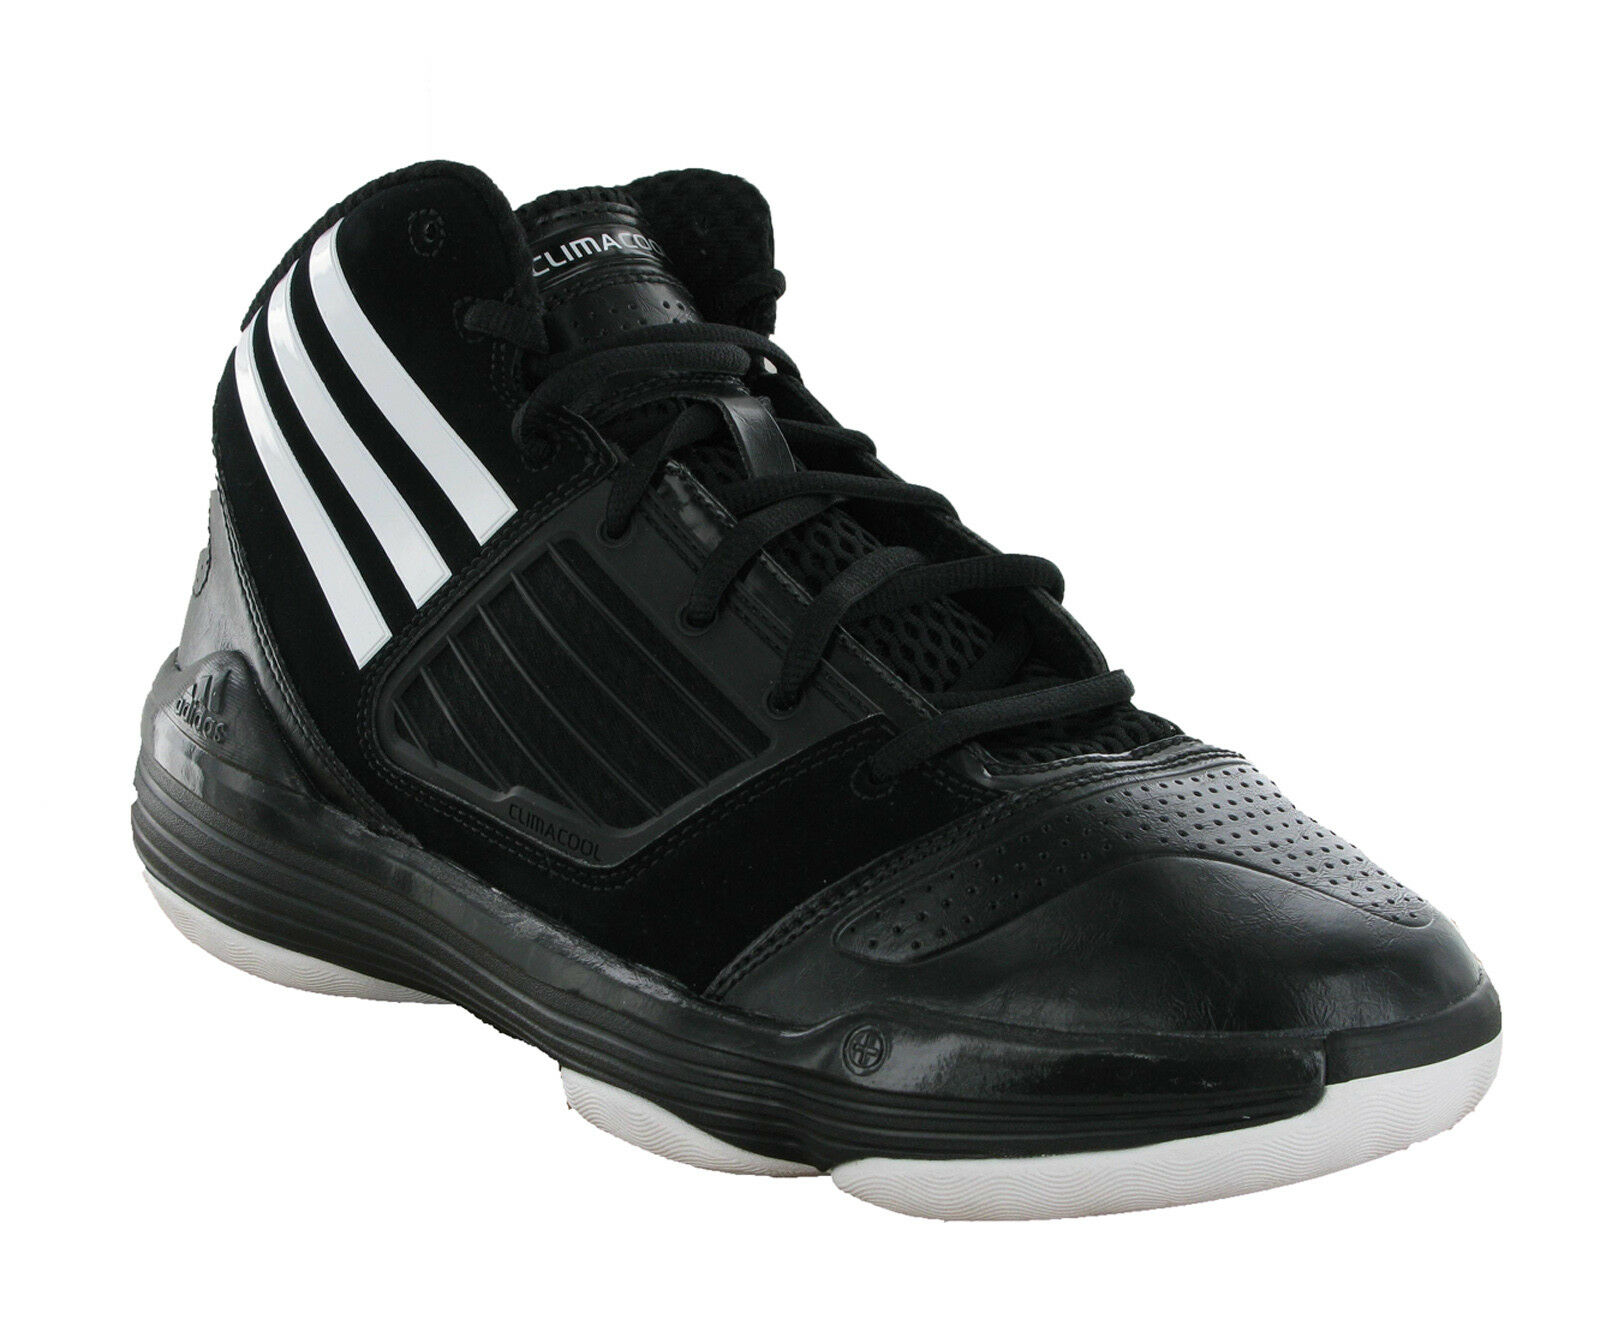 info for d0689 52068 ADIDAS ADIDAS ADIDAS CLIMA folie Basketball Baskets Hommes Bottes UK9 a345a3